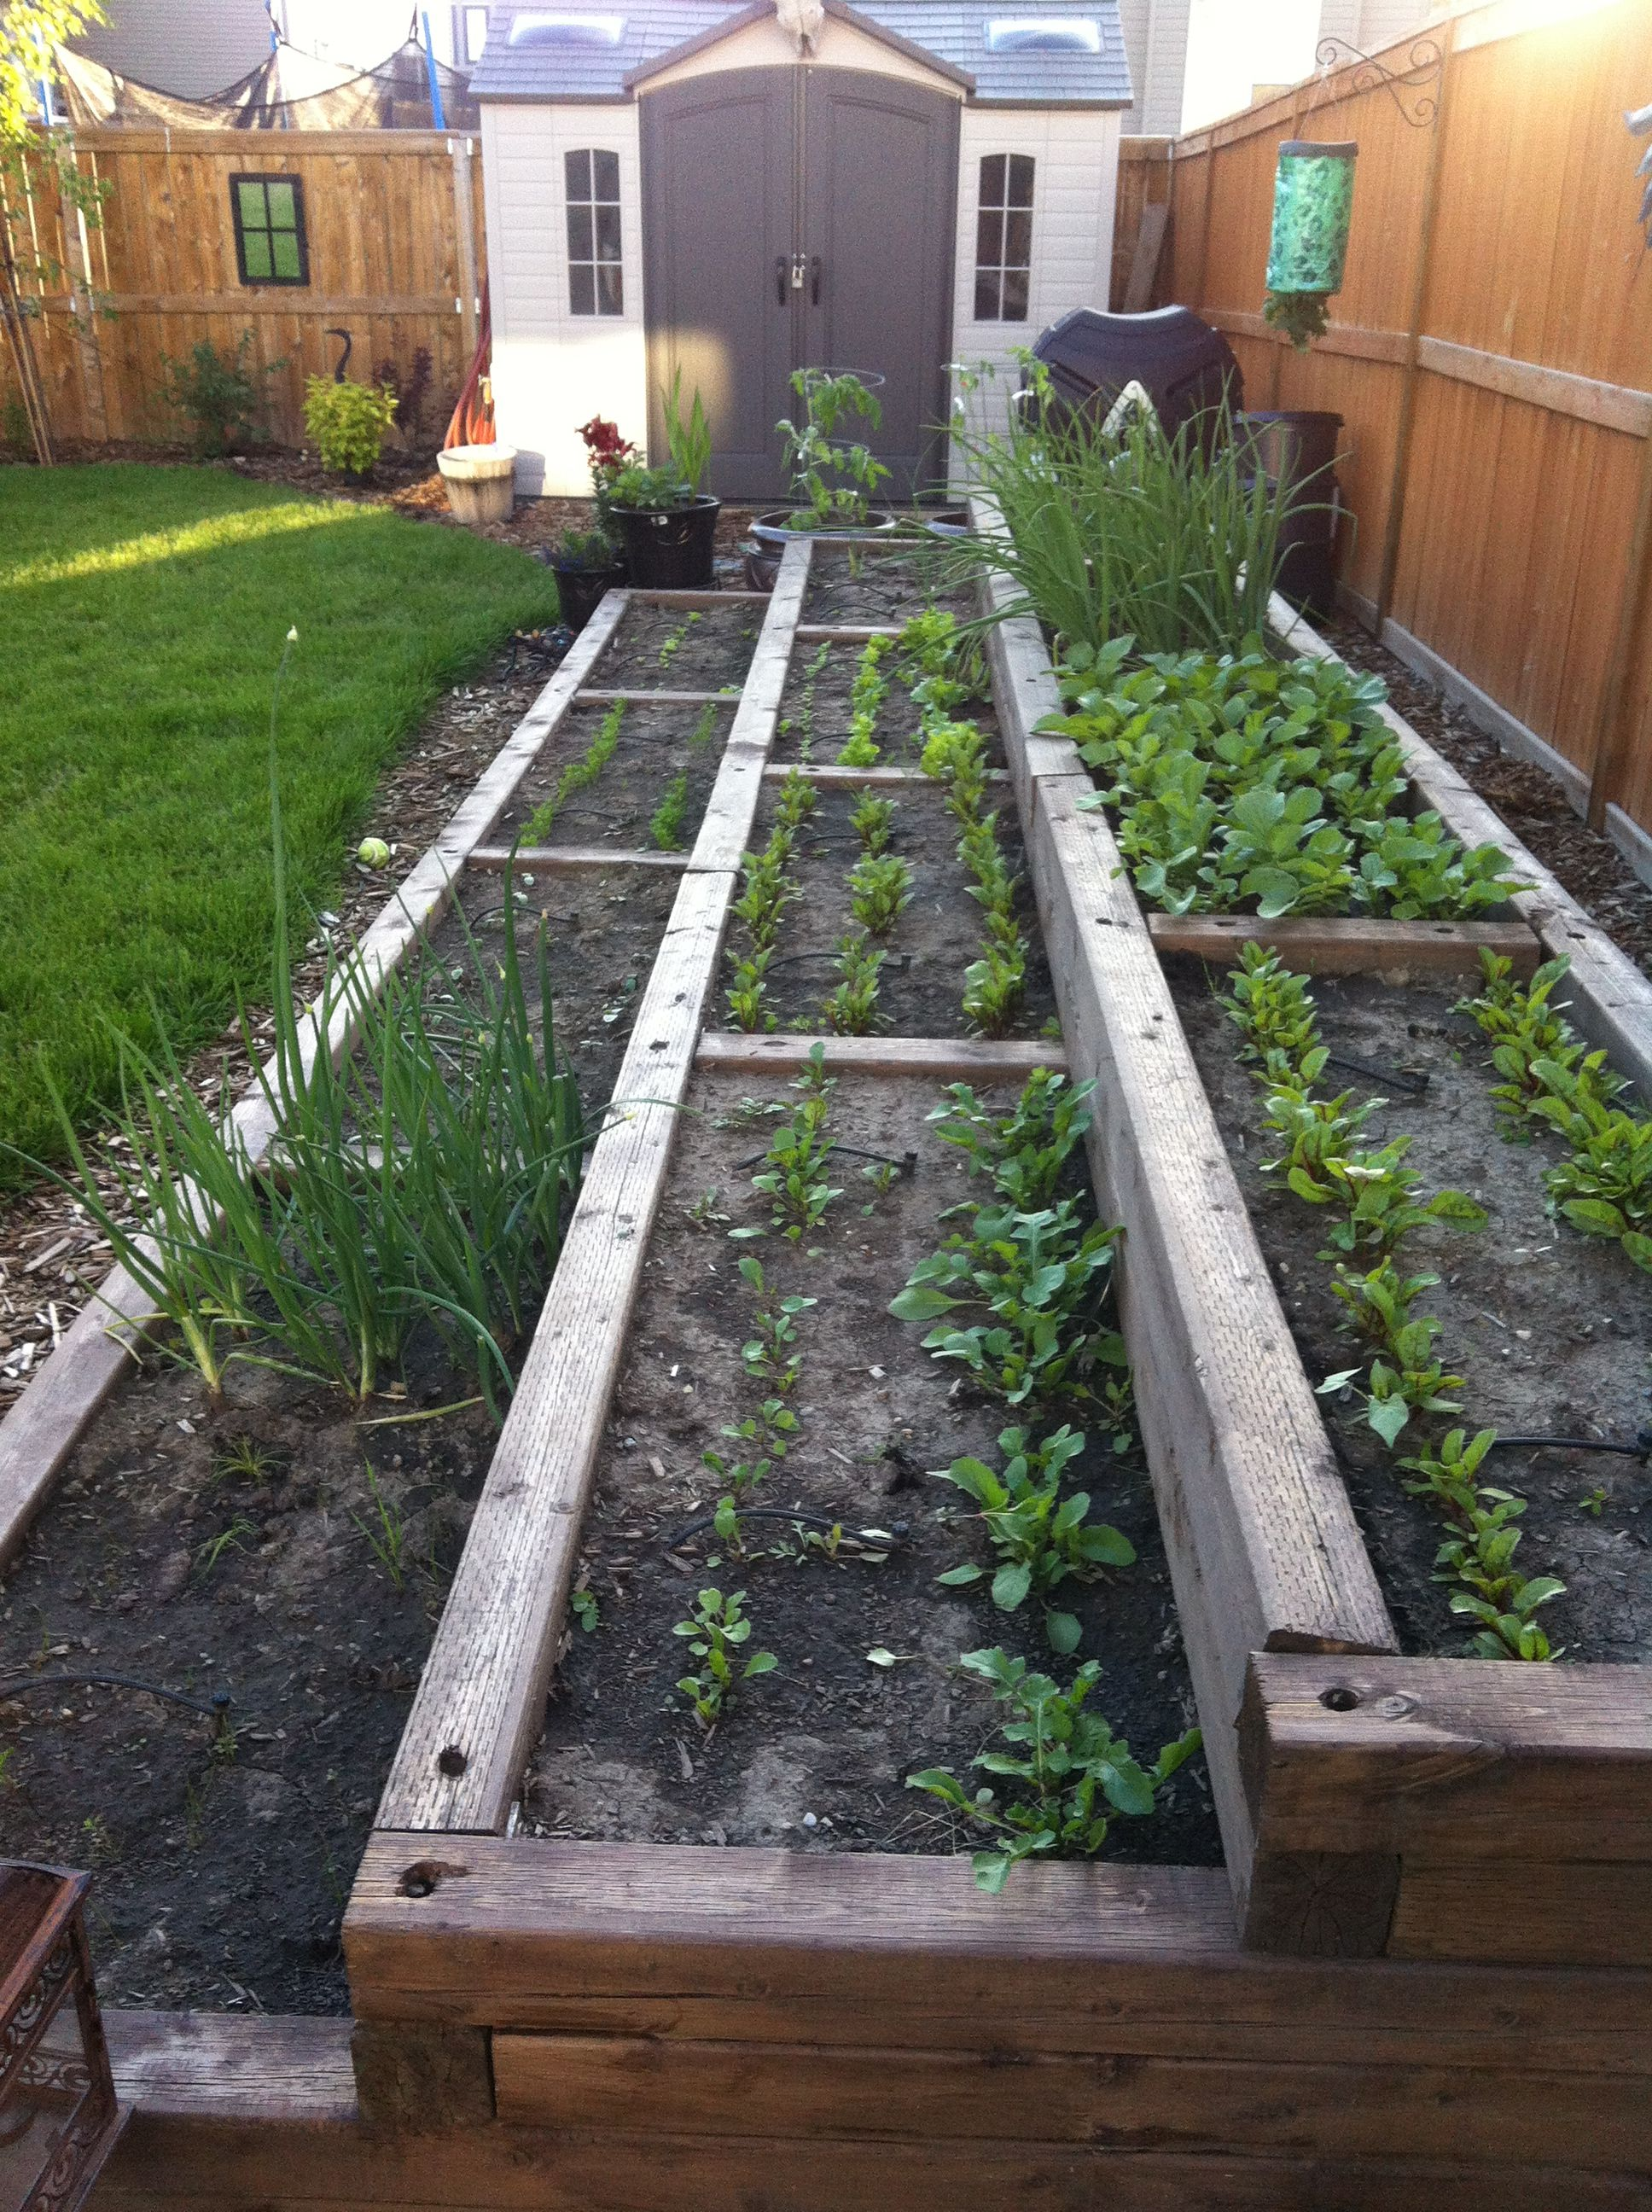 Pin By Kim Conley On Garden Fenced Vegetable Garden Backyard Backyard Vegetable Gardens